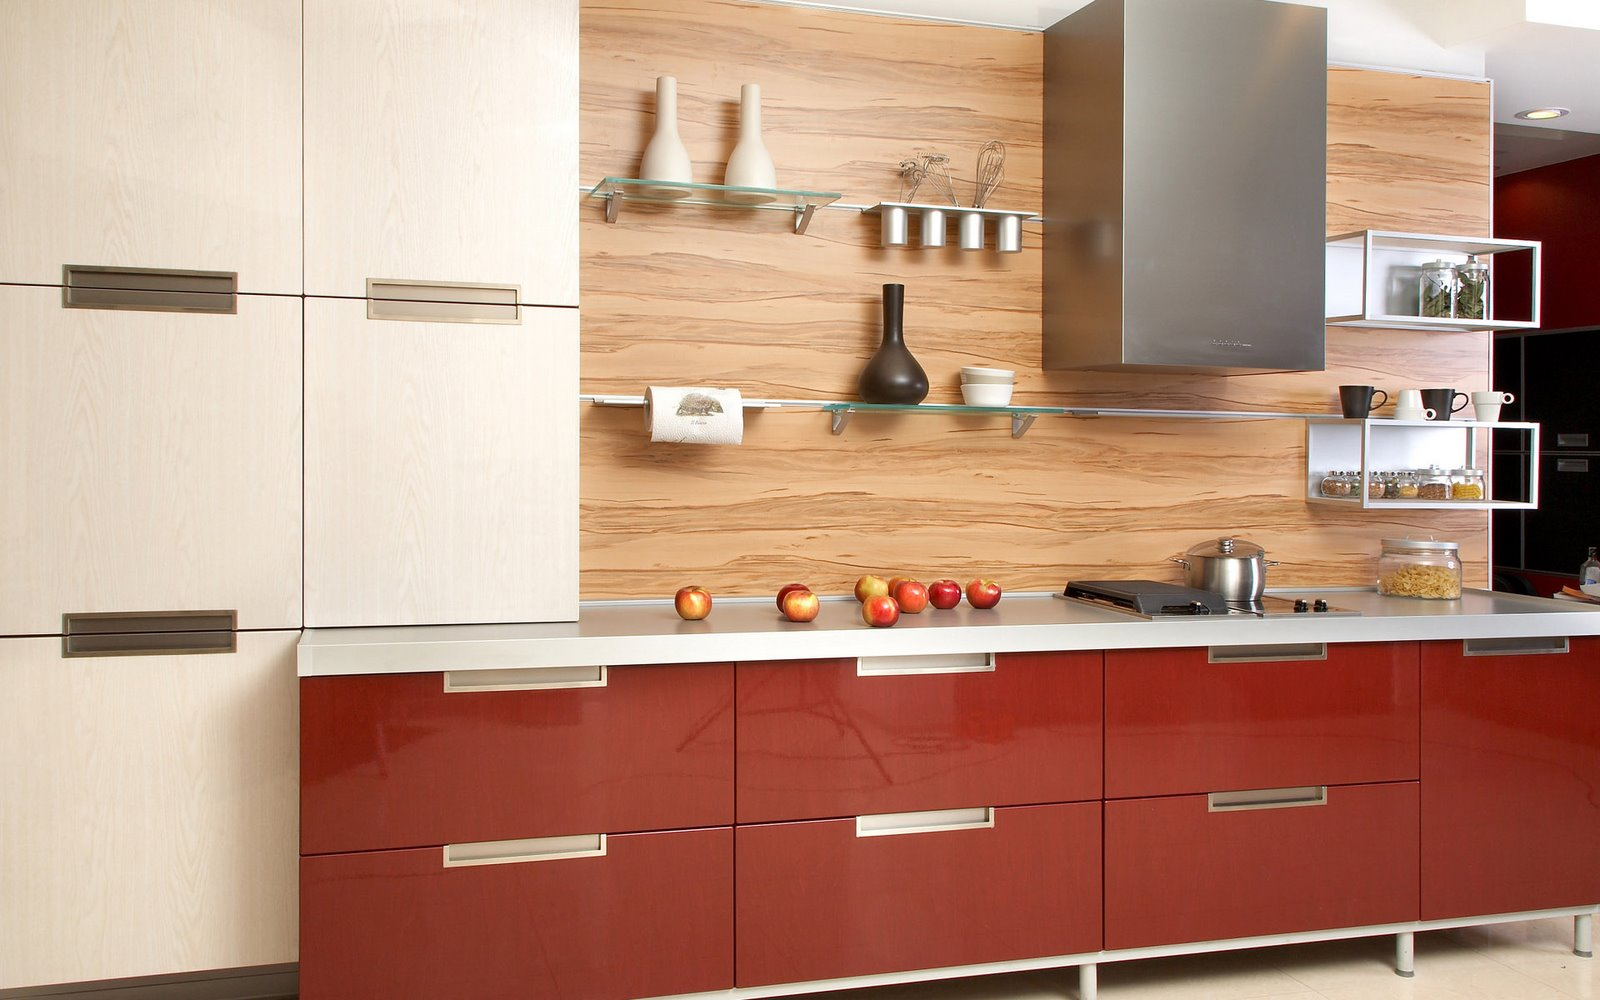 Modern wood kitchen design dream kitchens pinterest for Modern kitchen cabinet design